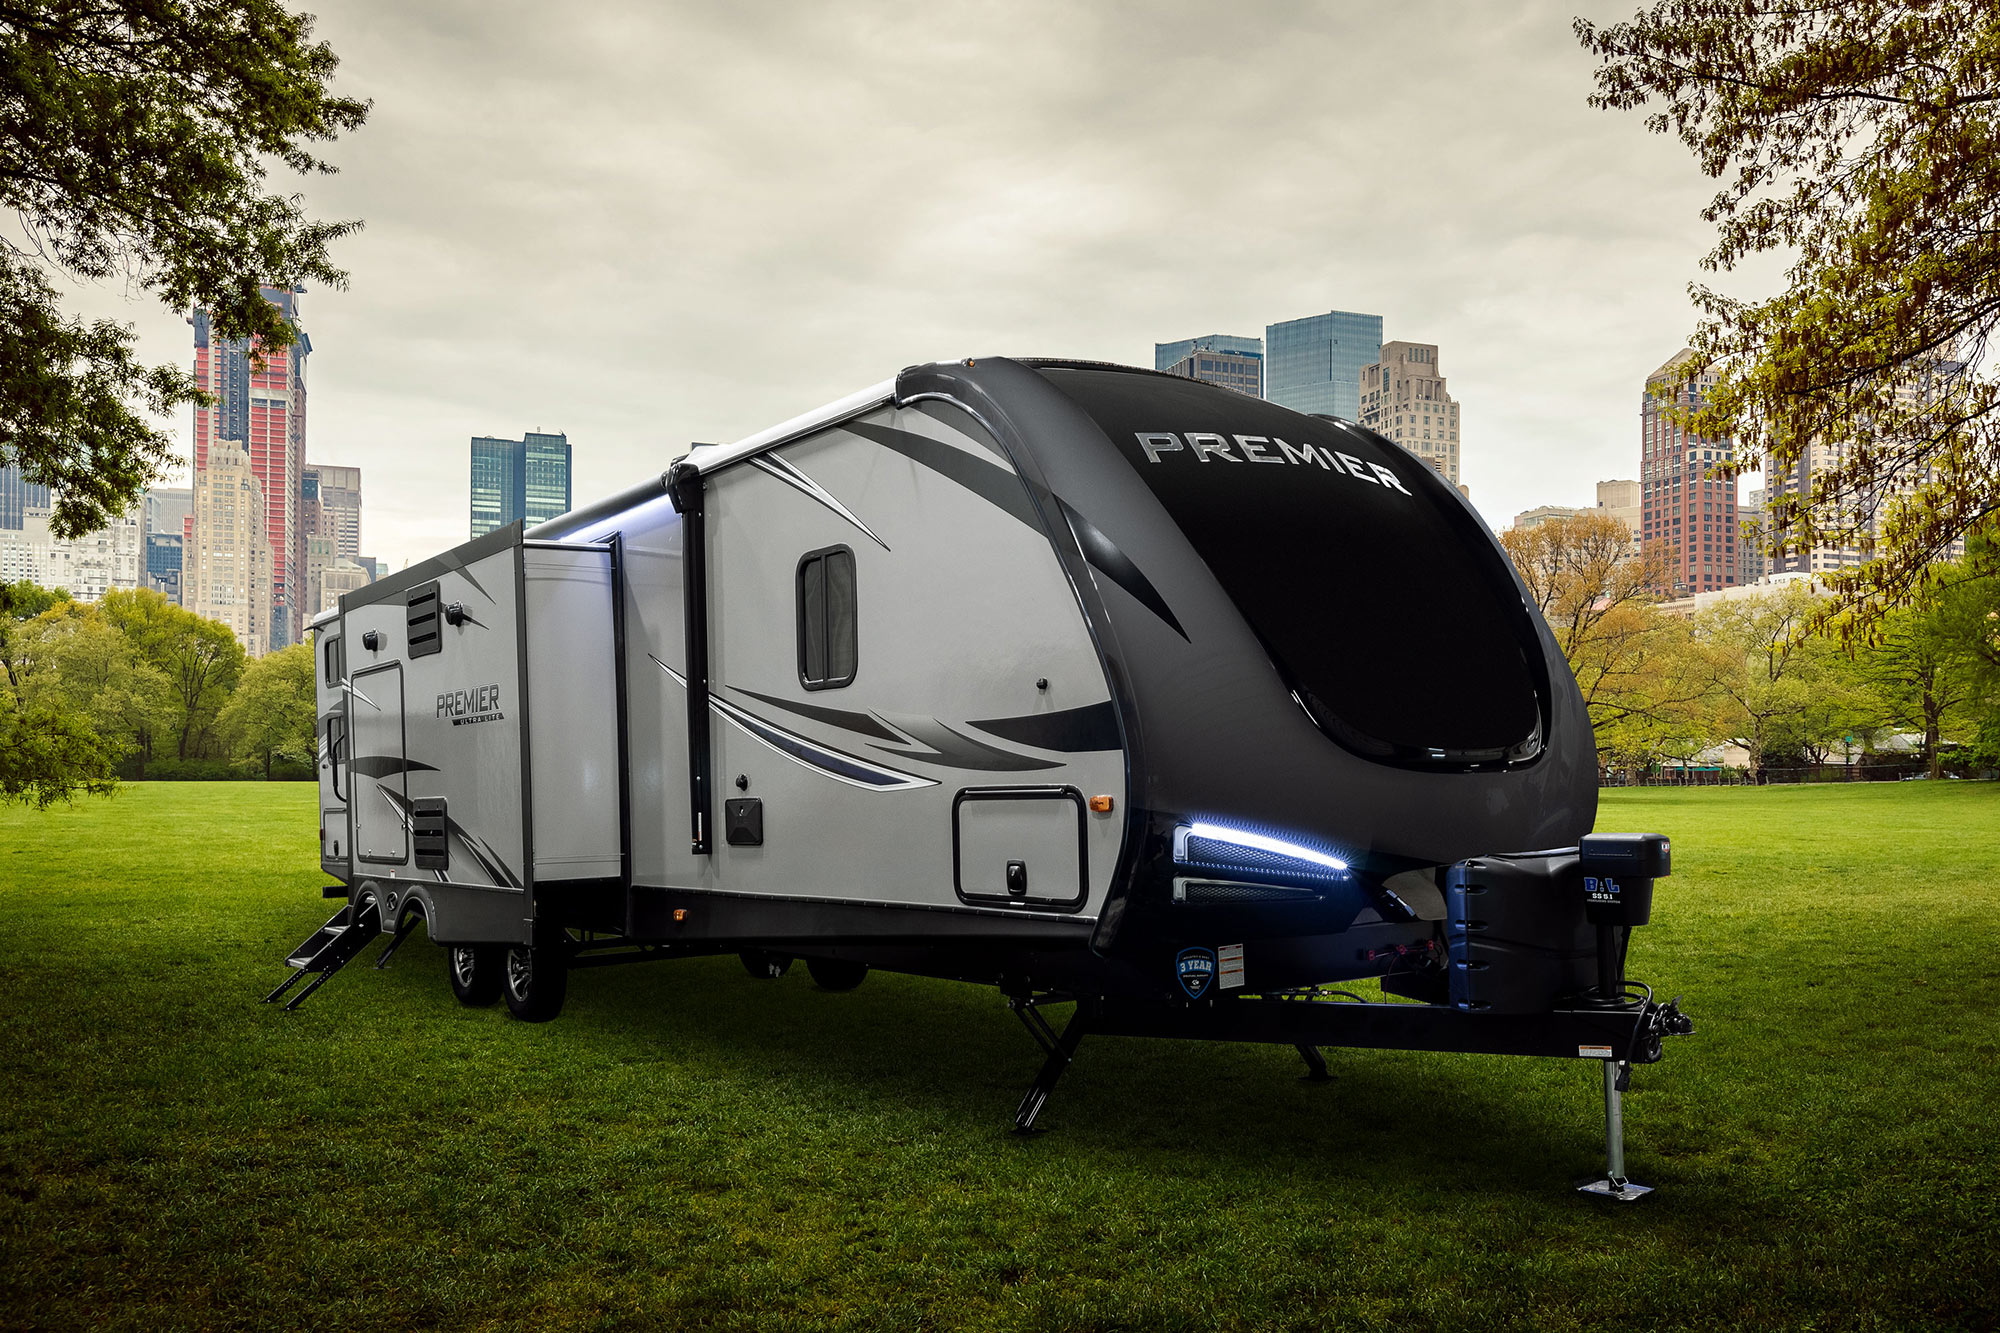 Keystone Premier Travel Trailers